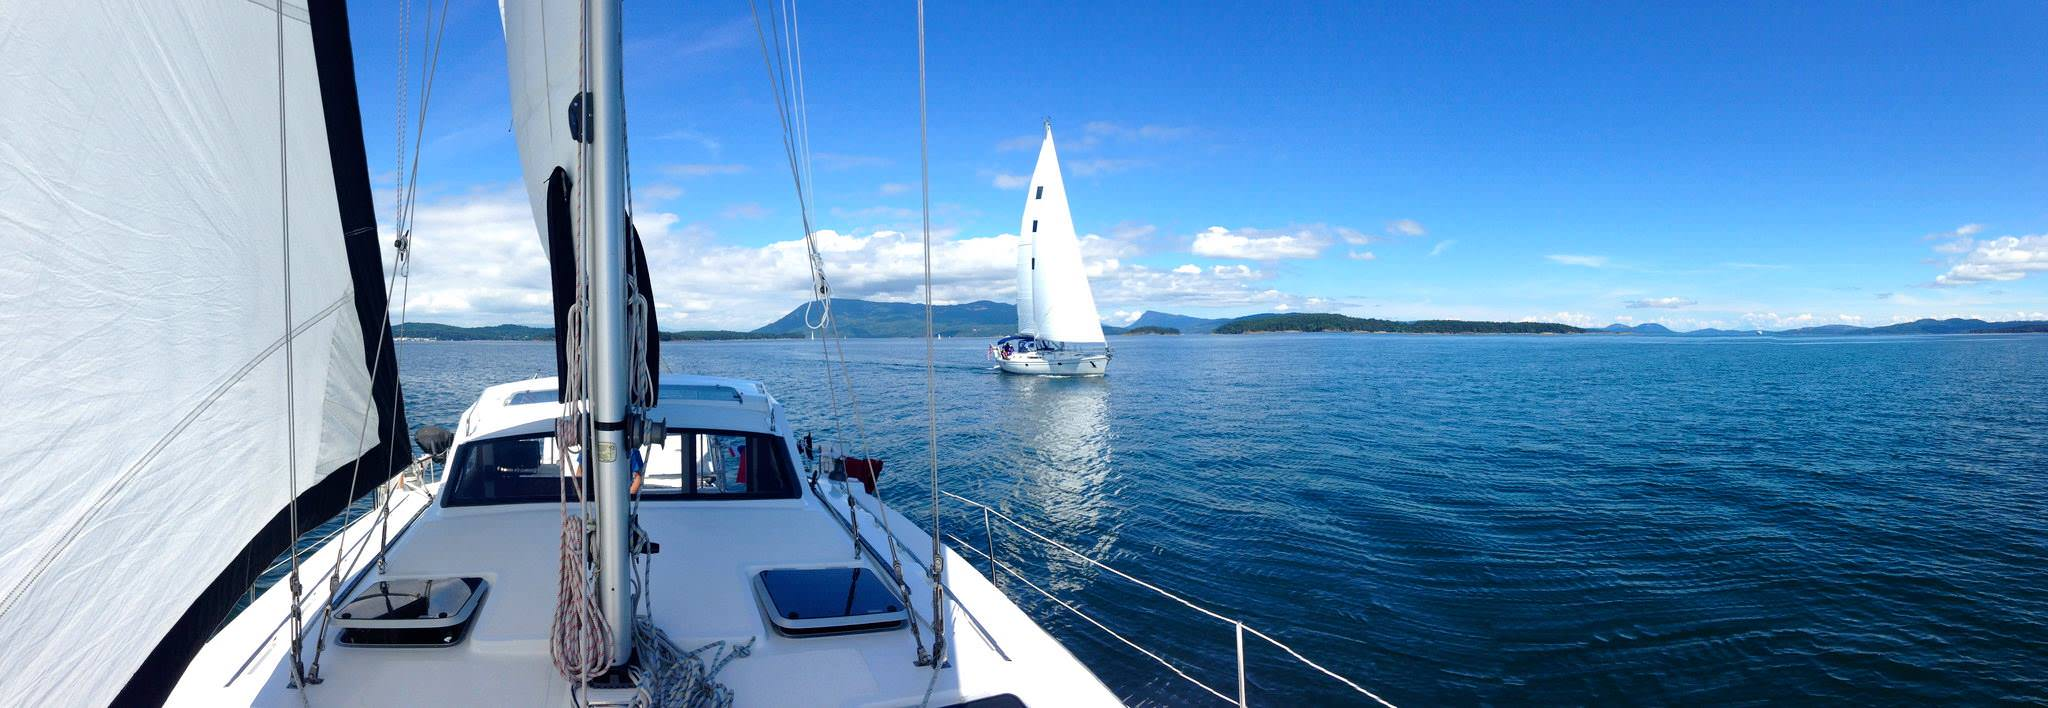 ASA flotilla in the San Juan Islands